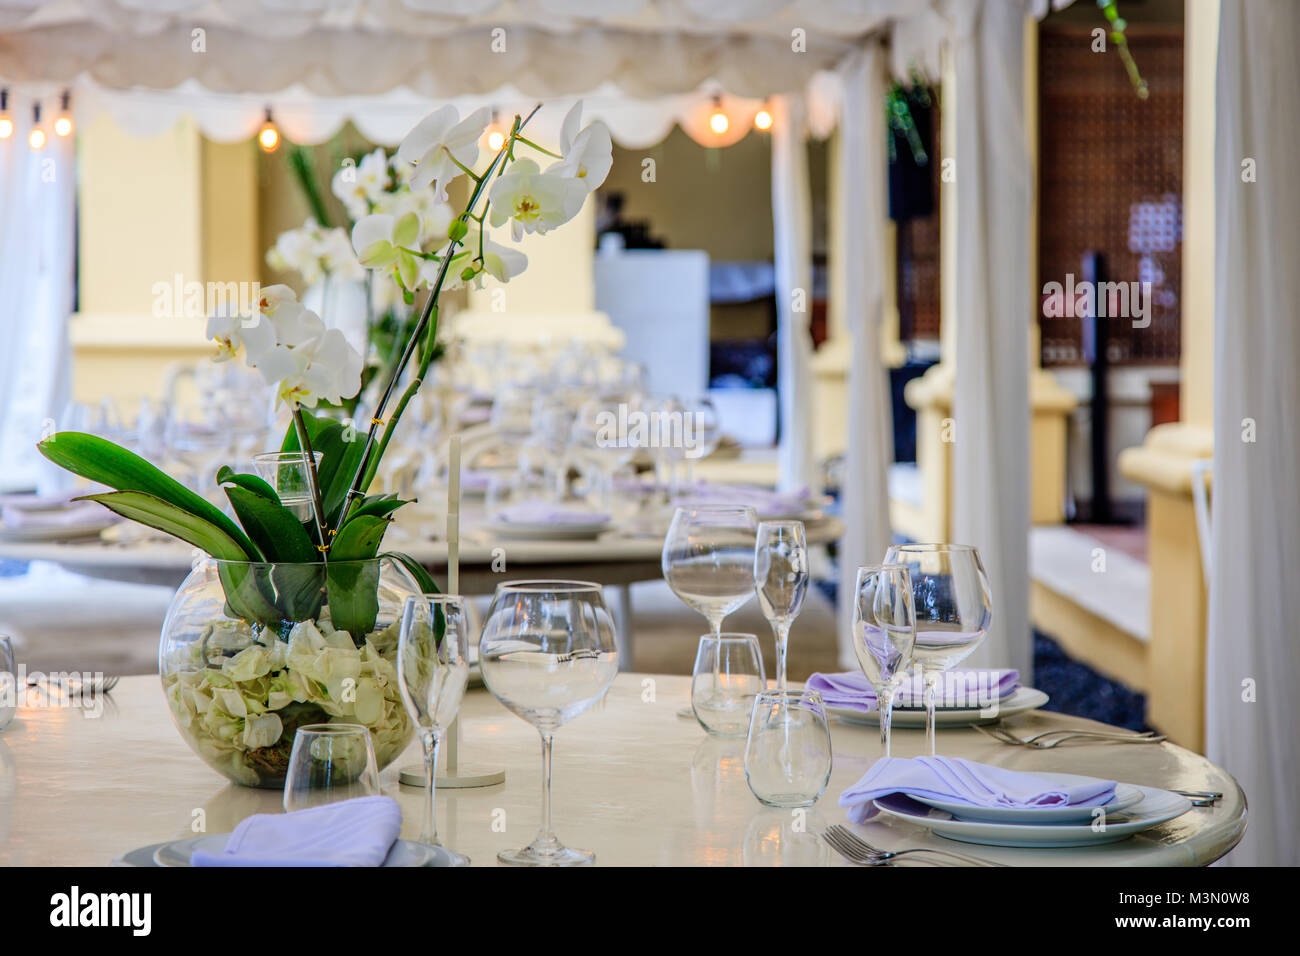 Set tables for a white wedding dinner decorated with orchids set tables for a white wedding dinner decorated with orchids vases glasses plates napkins cutlery reviewsmspy